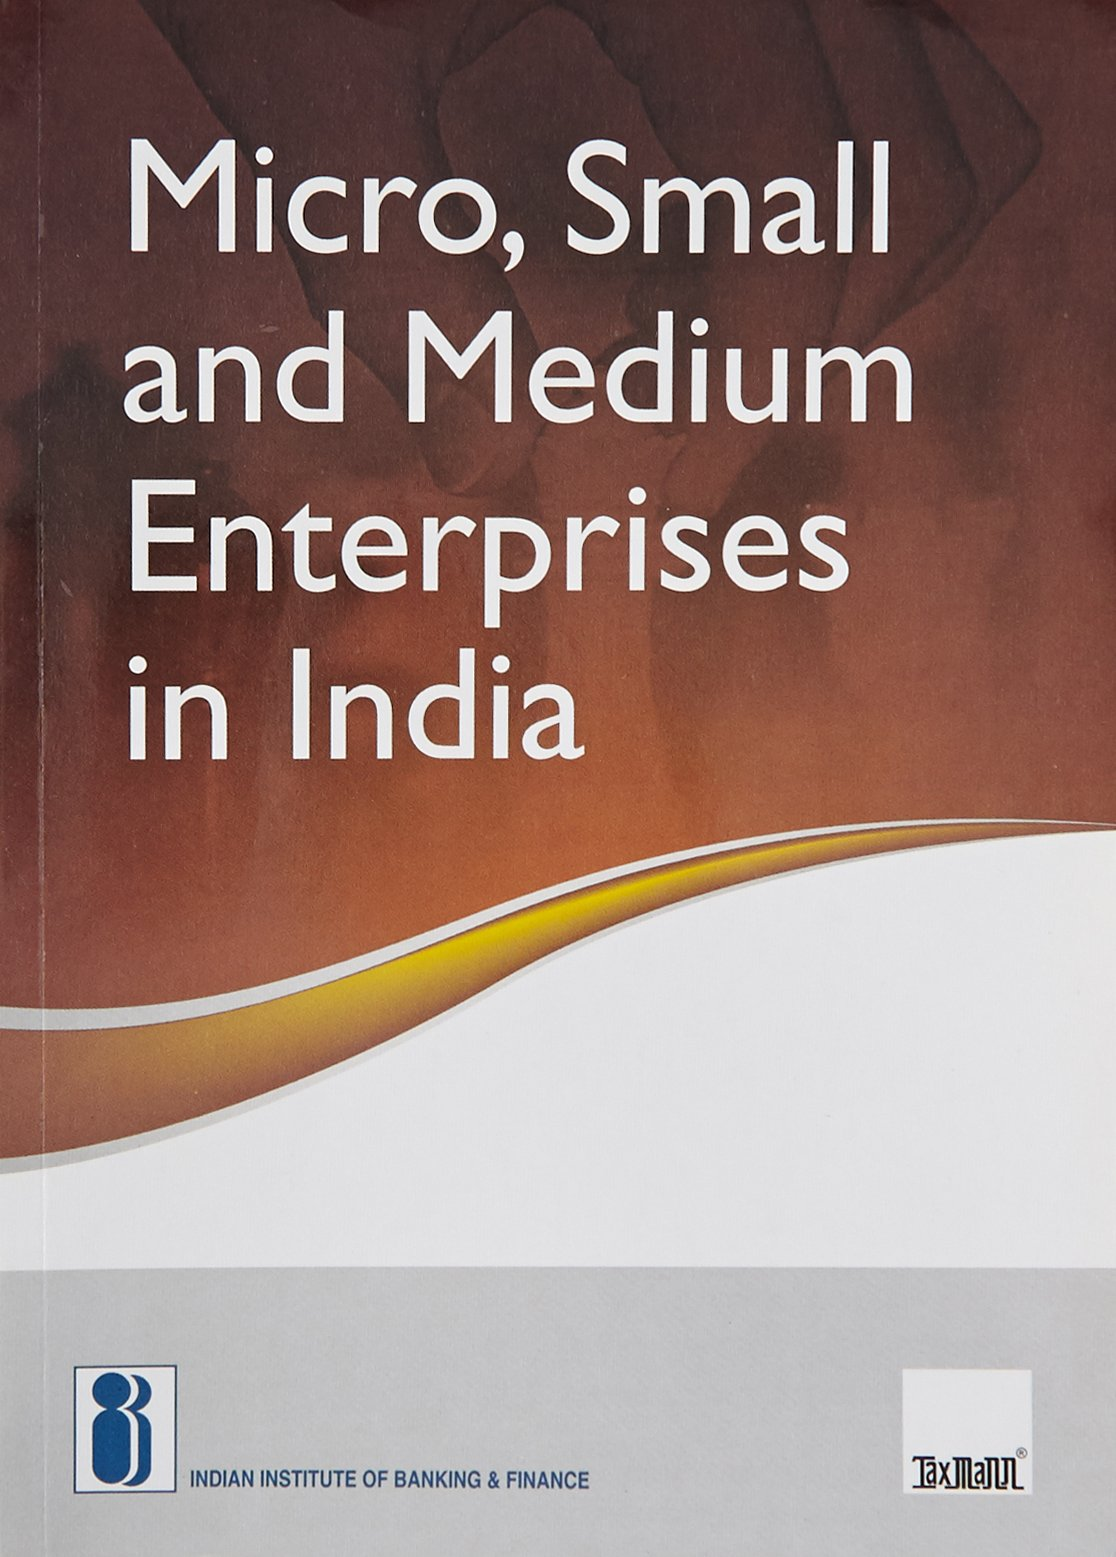 Buy micro small and medium enterprises in india 2017 edition buy micro small and medium enterprises in india 2017 edition book online at low prices in india micro small and medium enterprises in india 2017 fandeluxe Choice Image